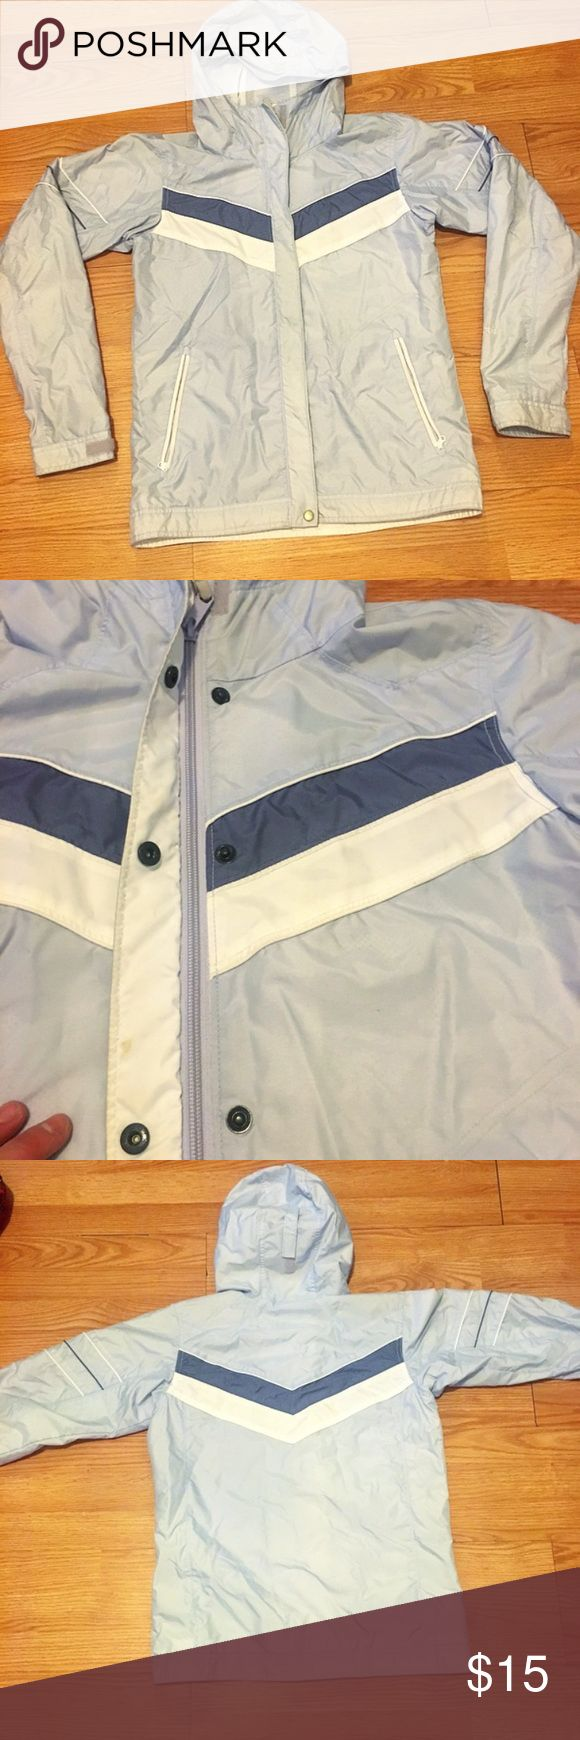 Columbia Rain Jacket Gently used Columbia Rain Jacket, kids size 18/20 or XL.   This is like a periwinkle blue color with white lining. Some discoloration on bottom of sleeves (see pic) slight mark on inside of zipper area (2nd pic). These would all probably come out in the wash.  good used condition Columbia Jackets & Coats Raincoats